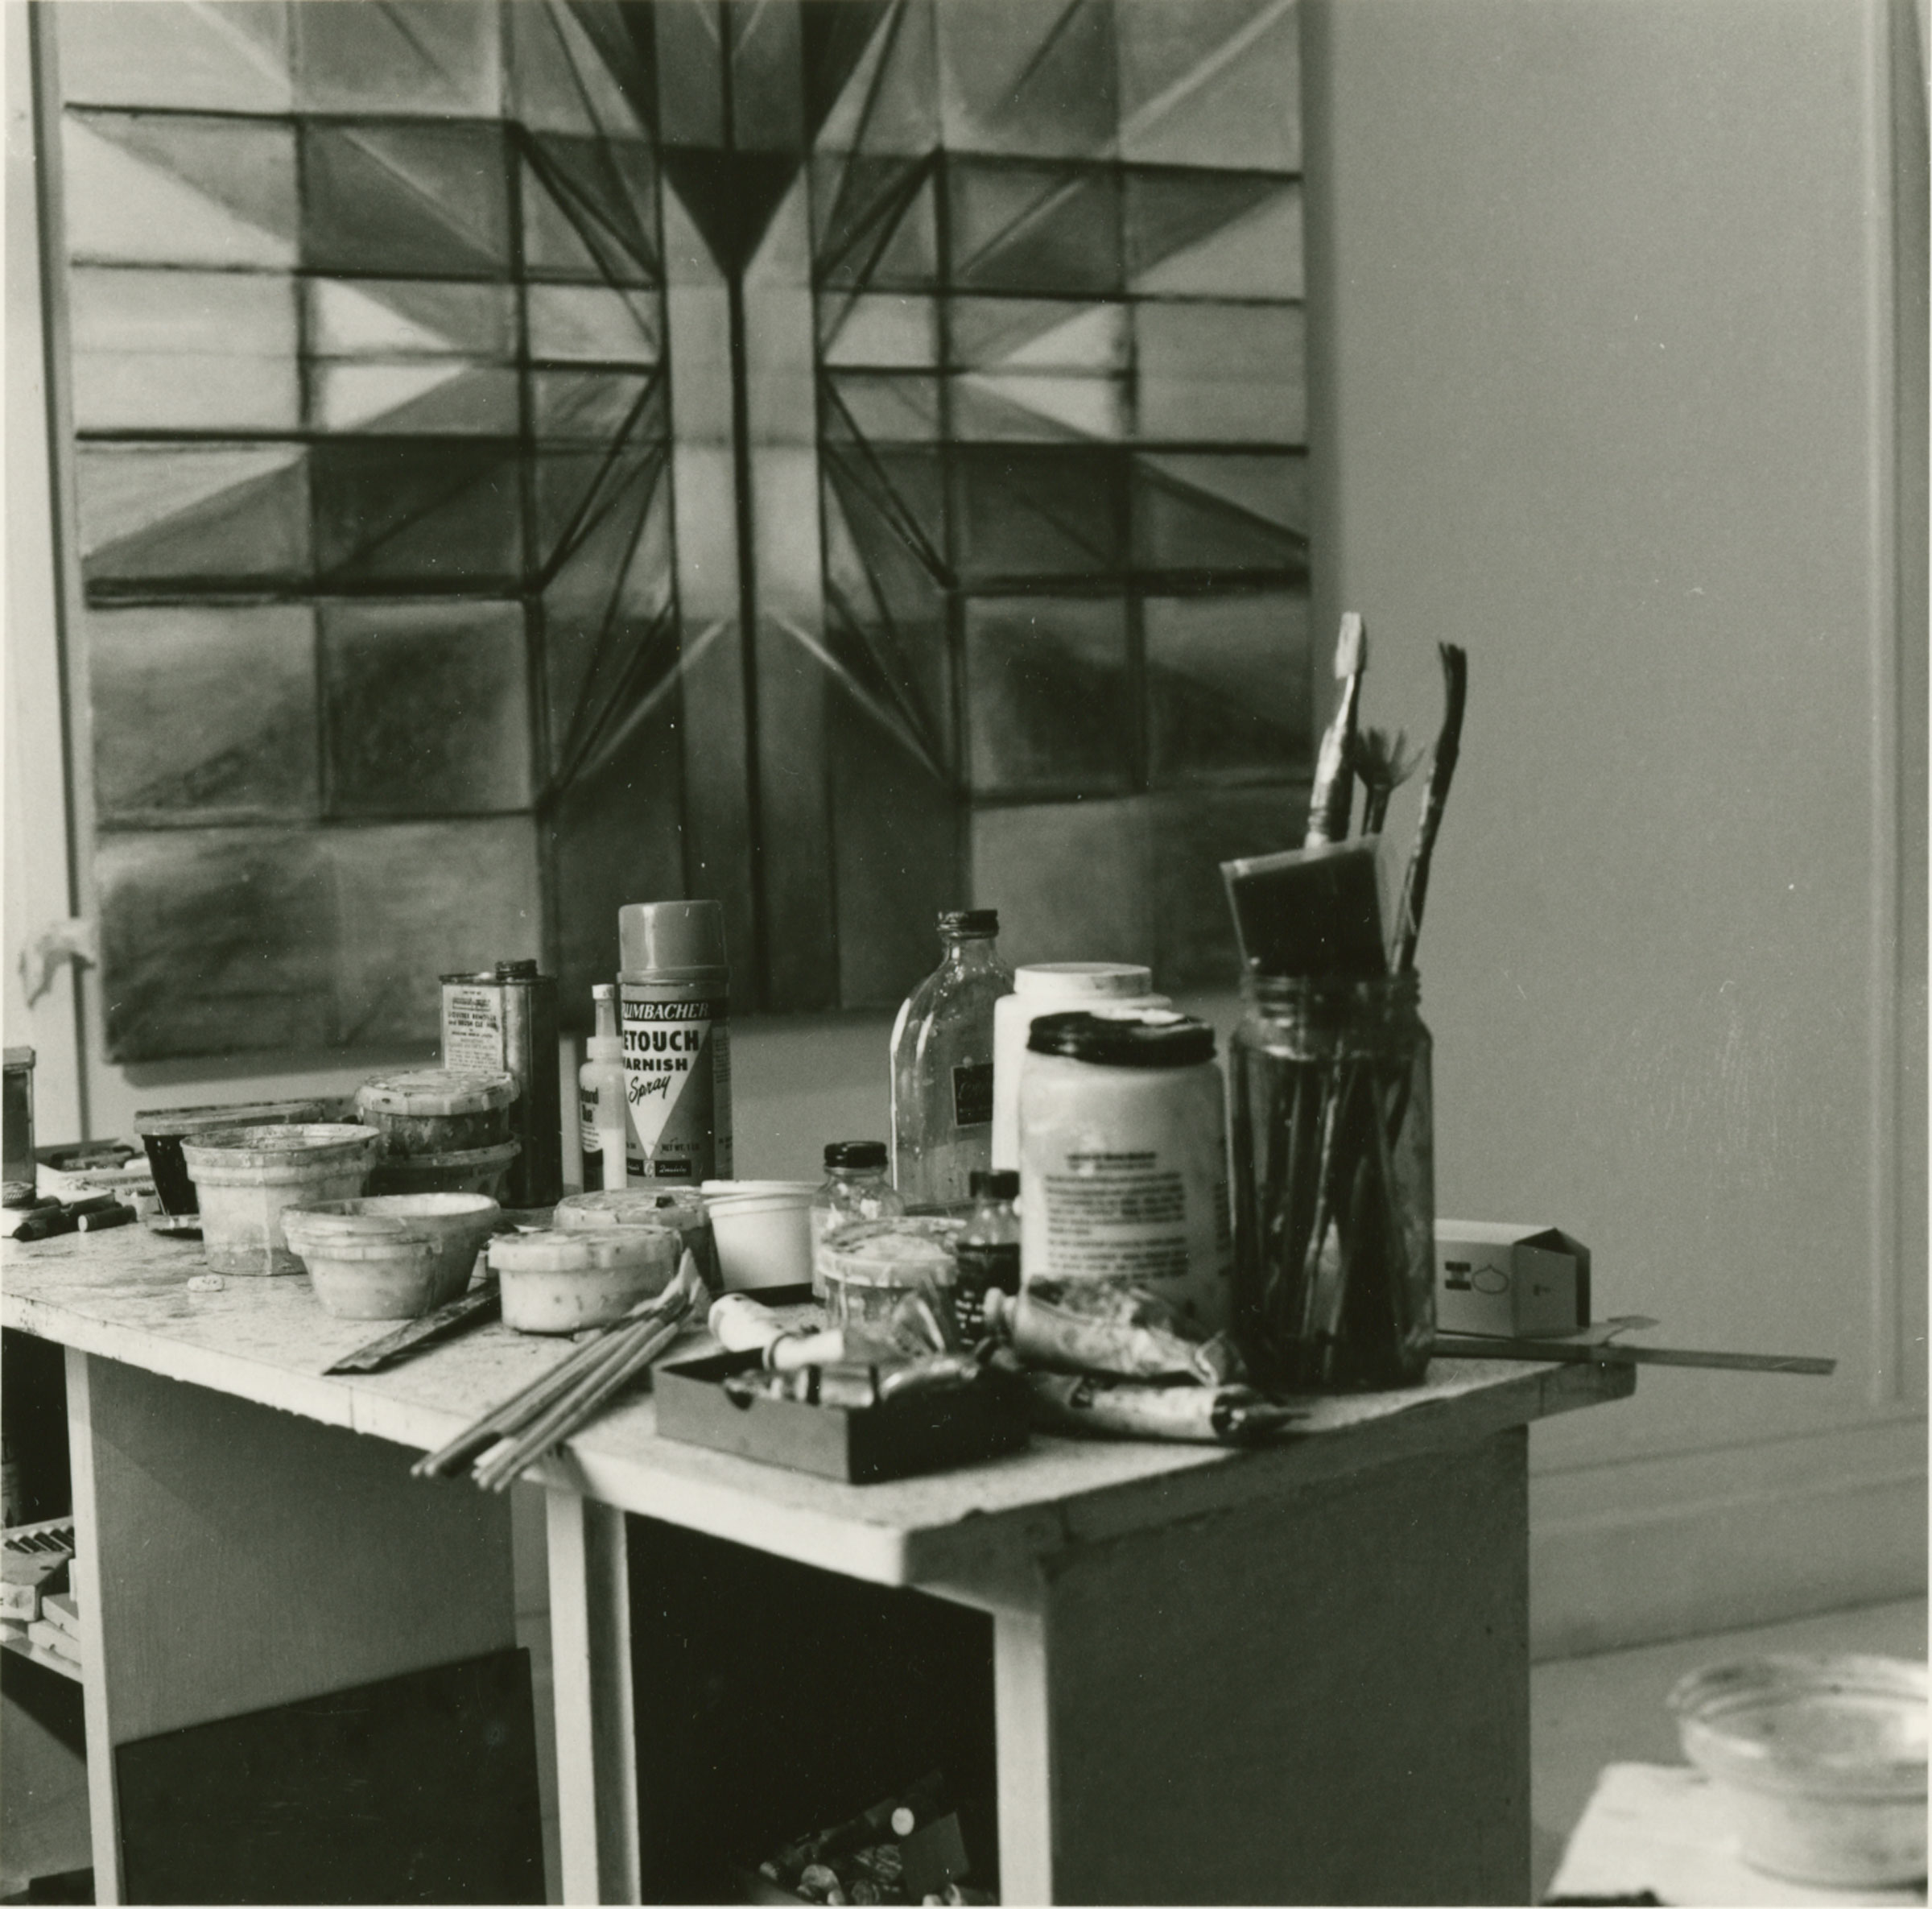 Photograph of Hedda Sterne's studio by Denise Browne Hare, 1983